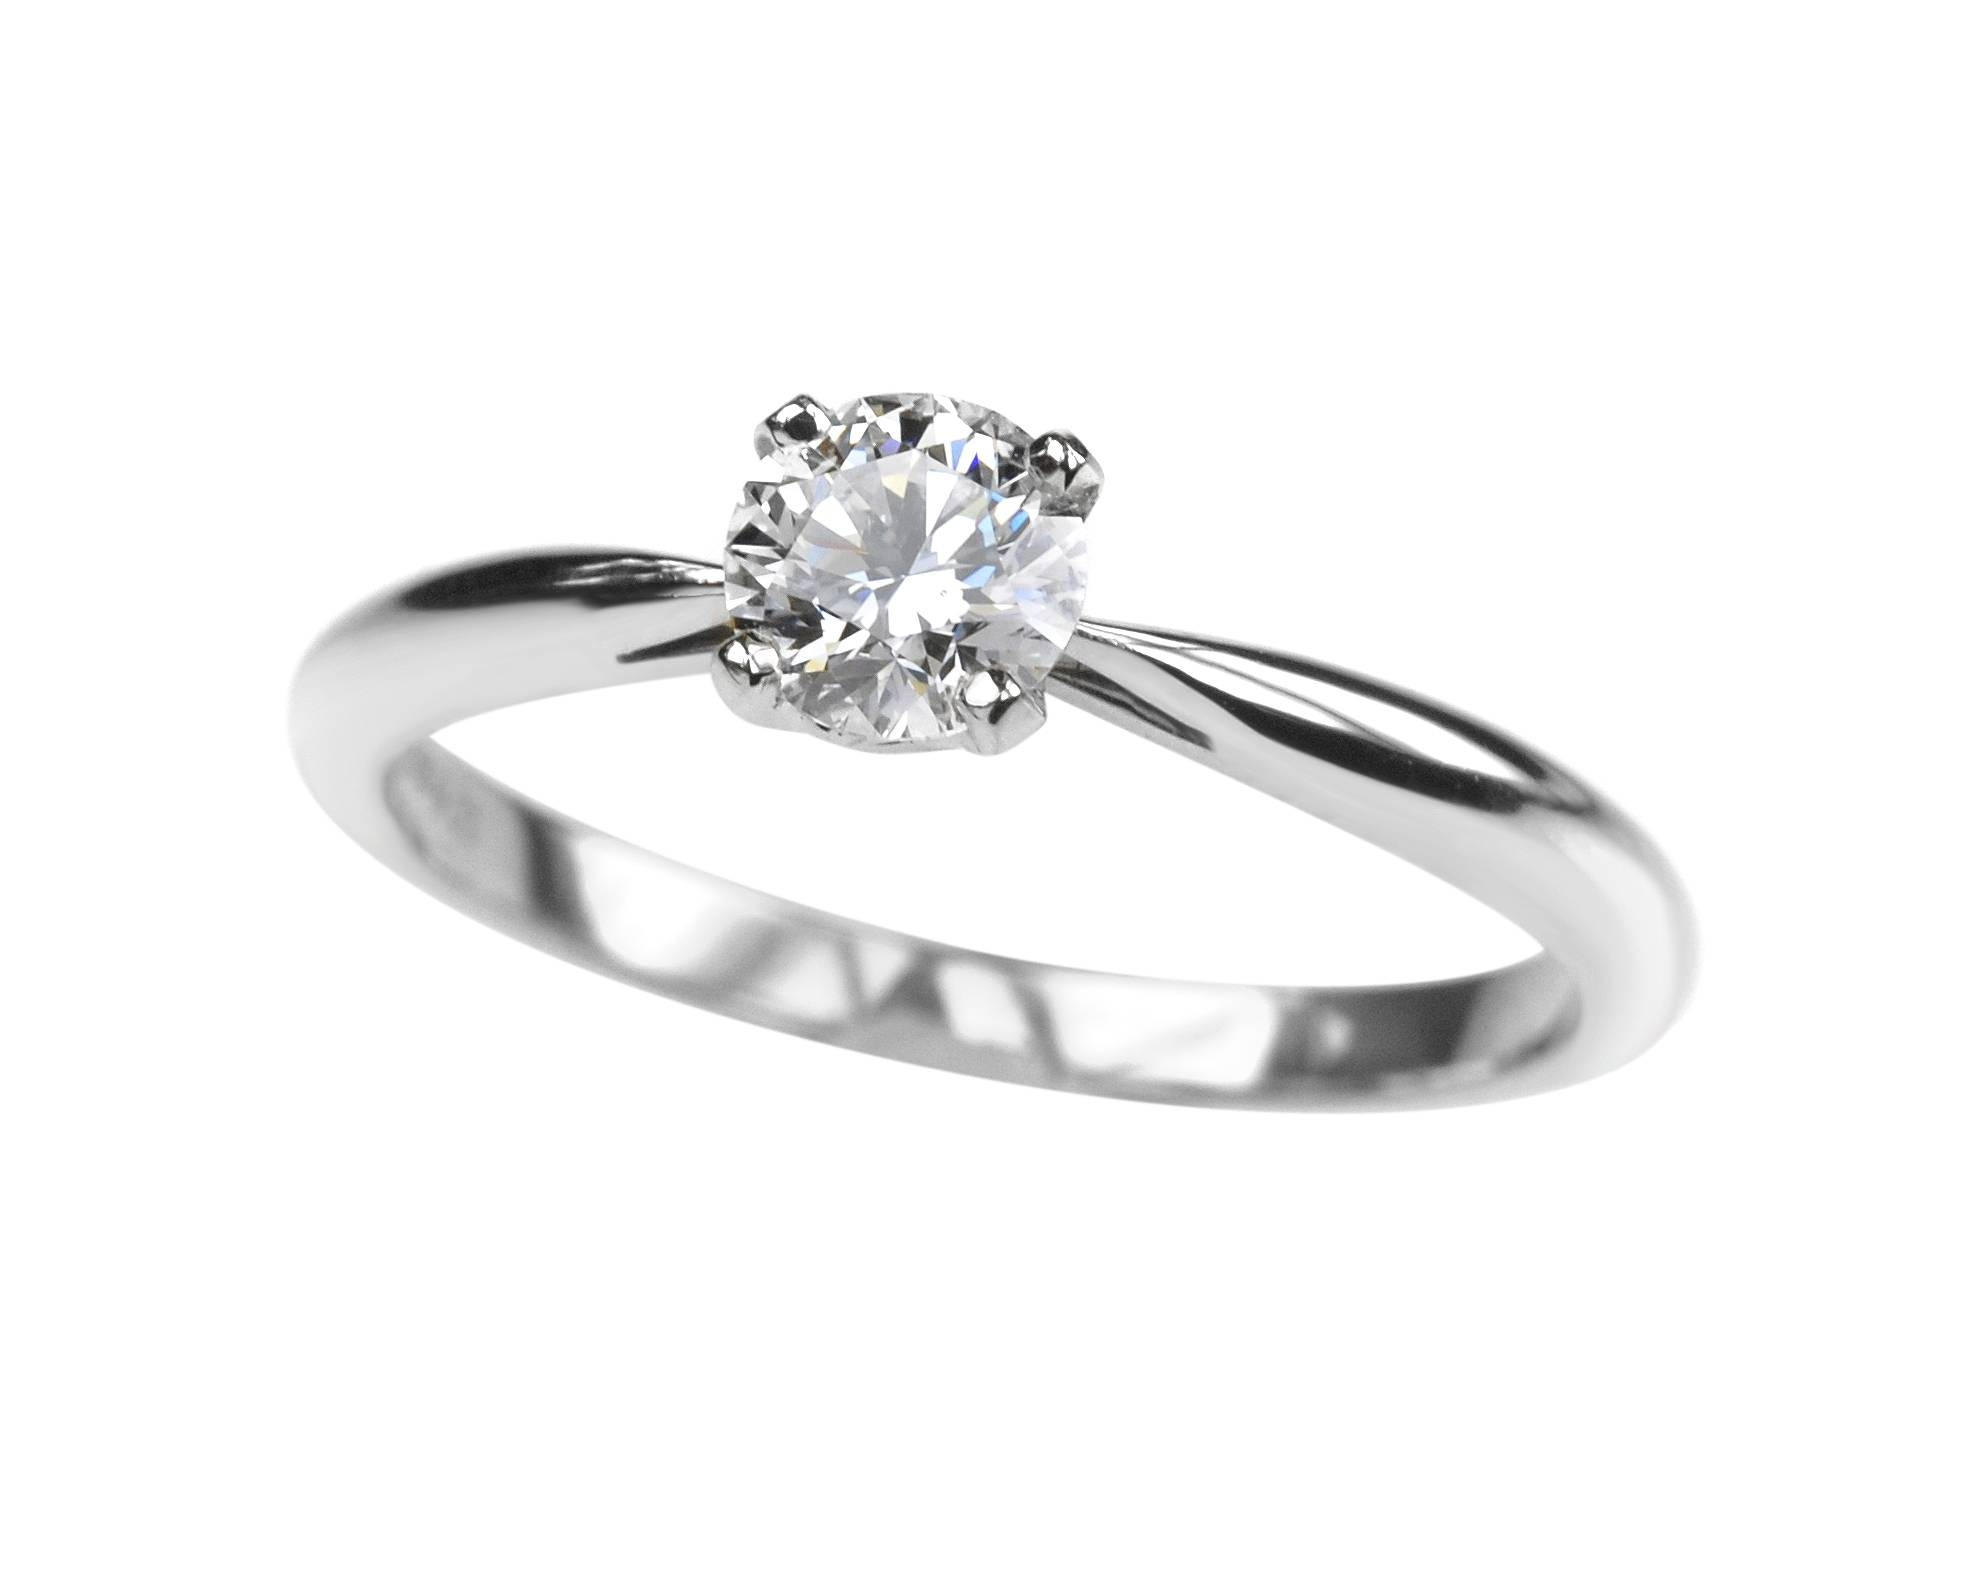 Diamond Engagement Rings London, Platinum Engagement Rings Intended For Diamond Platinum Wedding Rings (View 14 of 15)